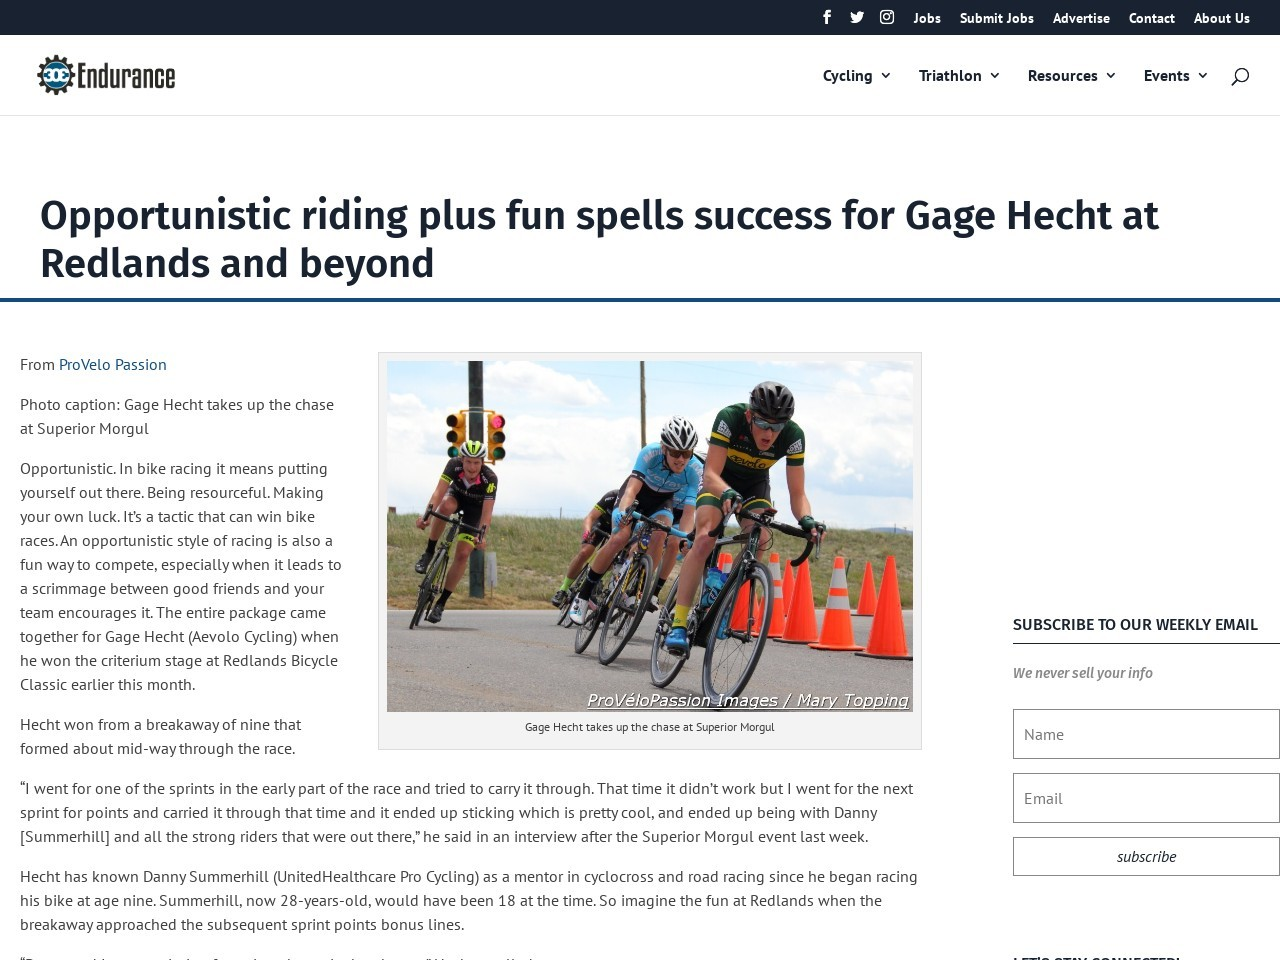 Opportunistic riding plus fun spells success for Gage Hecht at Redlands and beyond